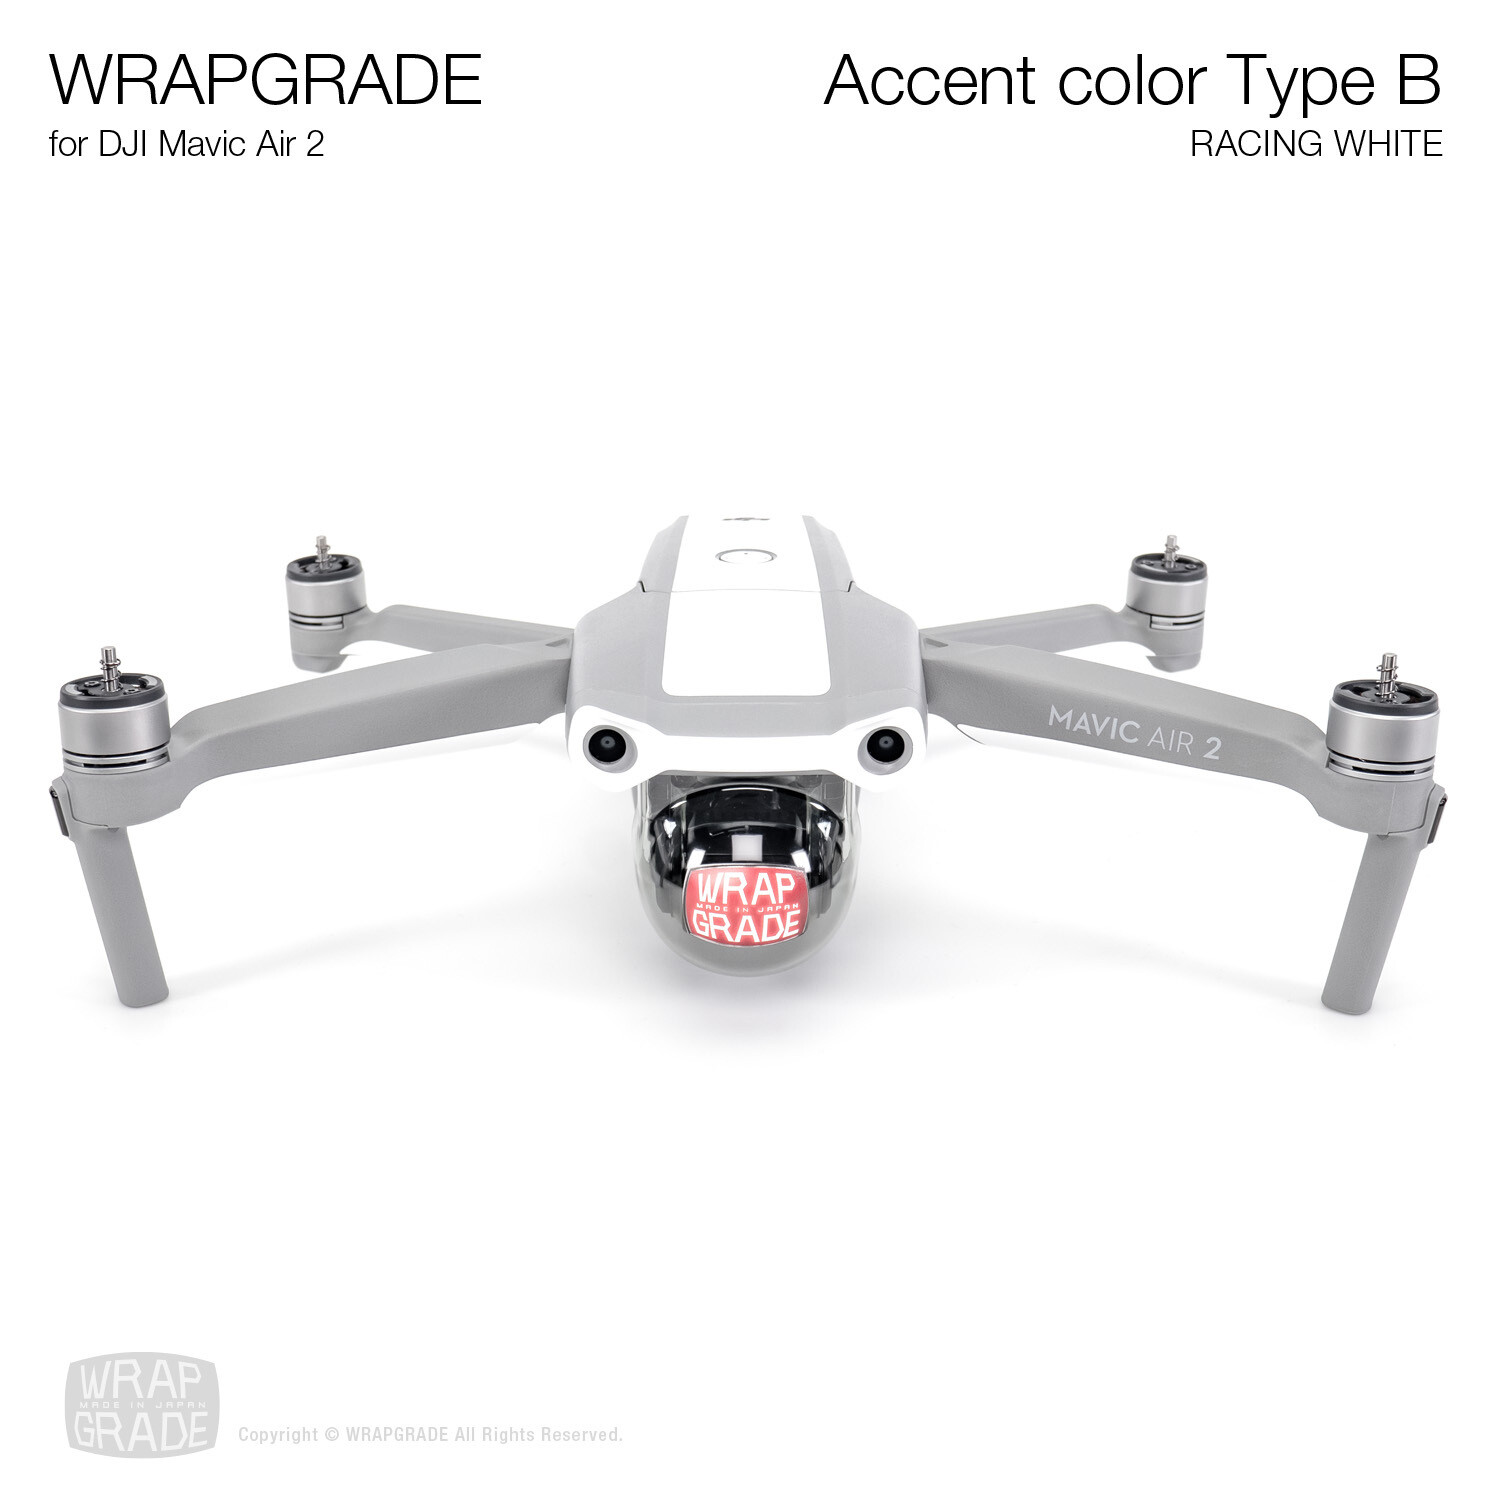 Wrapgrade for DJI Mavic Air 2 | Accent Color B (RACING WHITE)